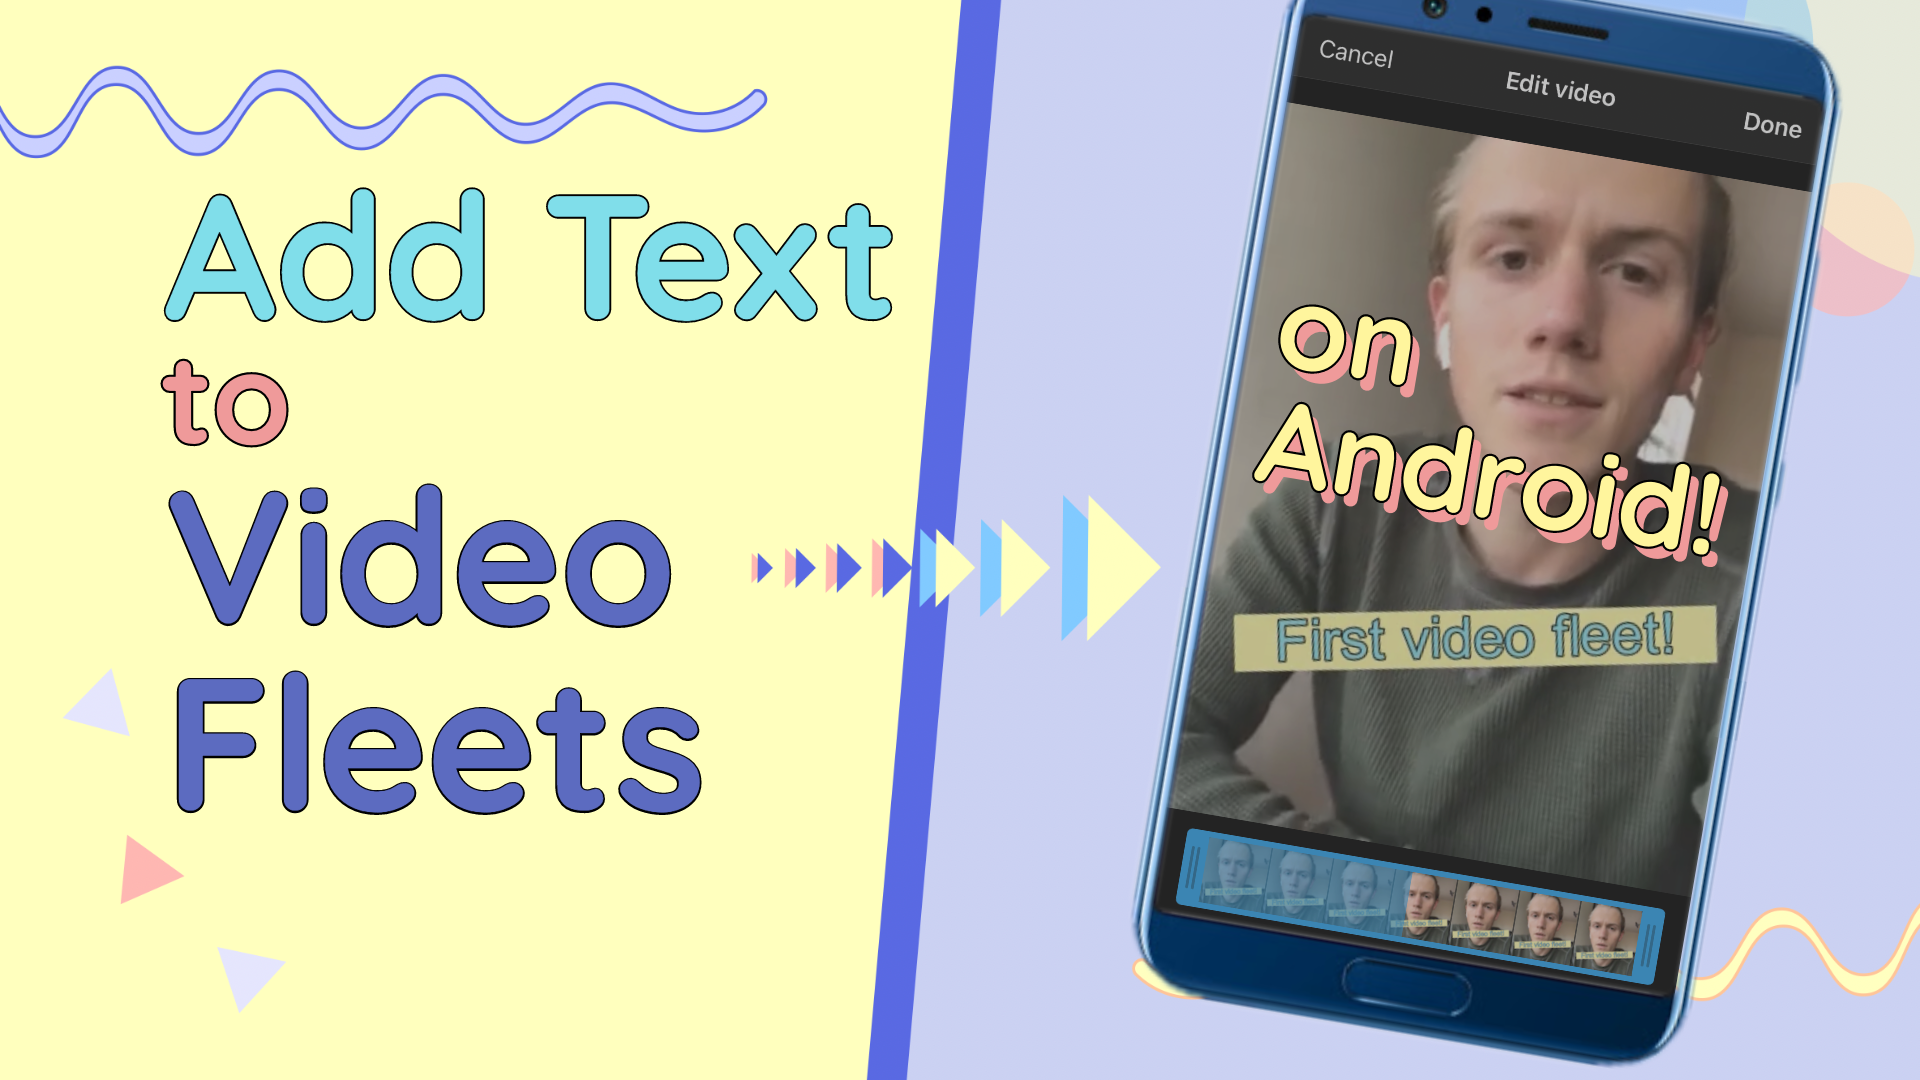 How to Add Text to Video Fleets on Android